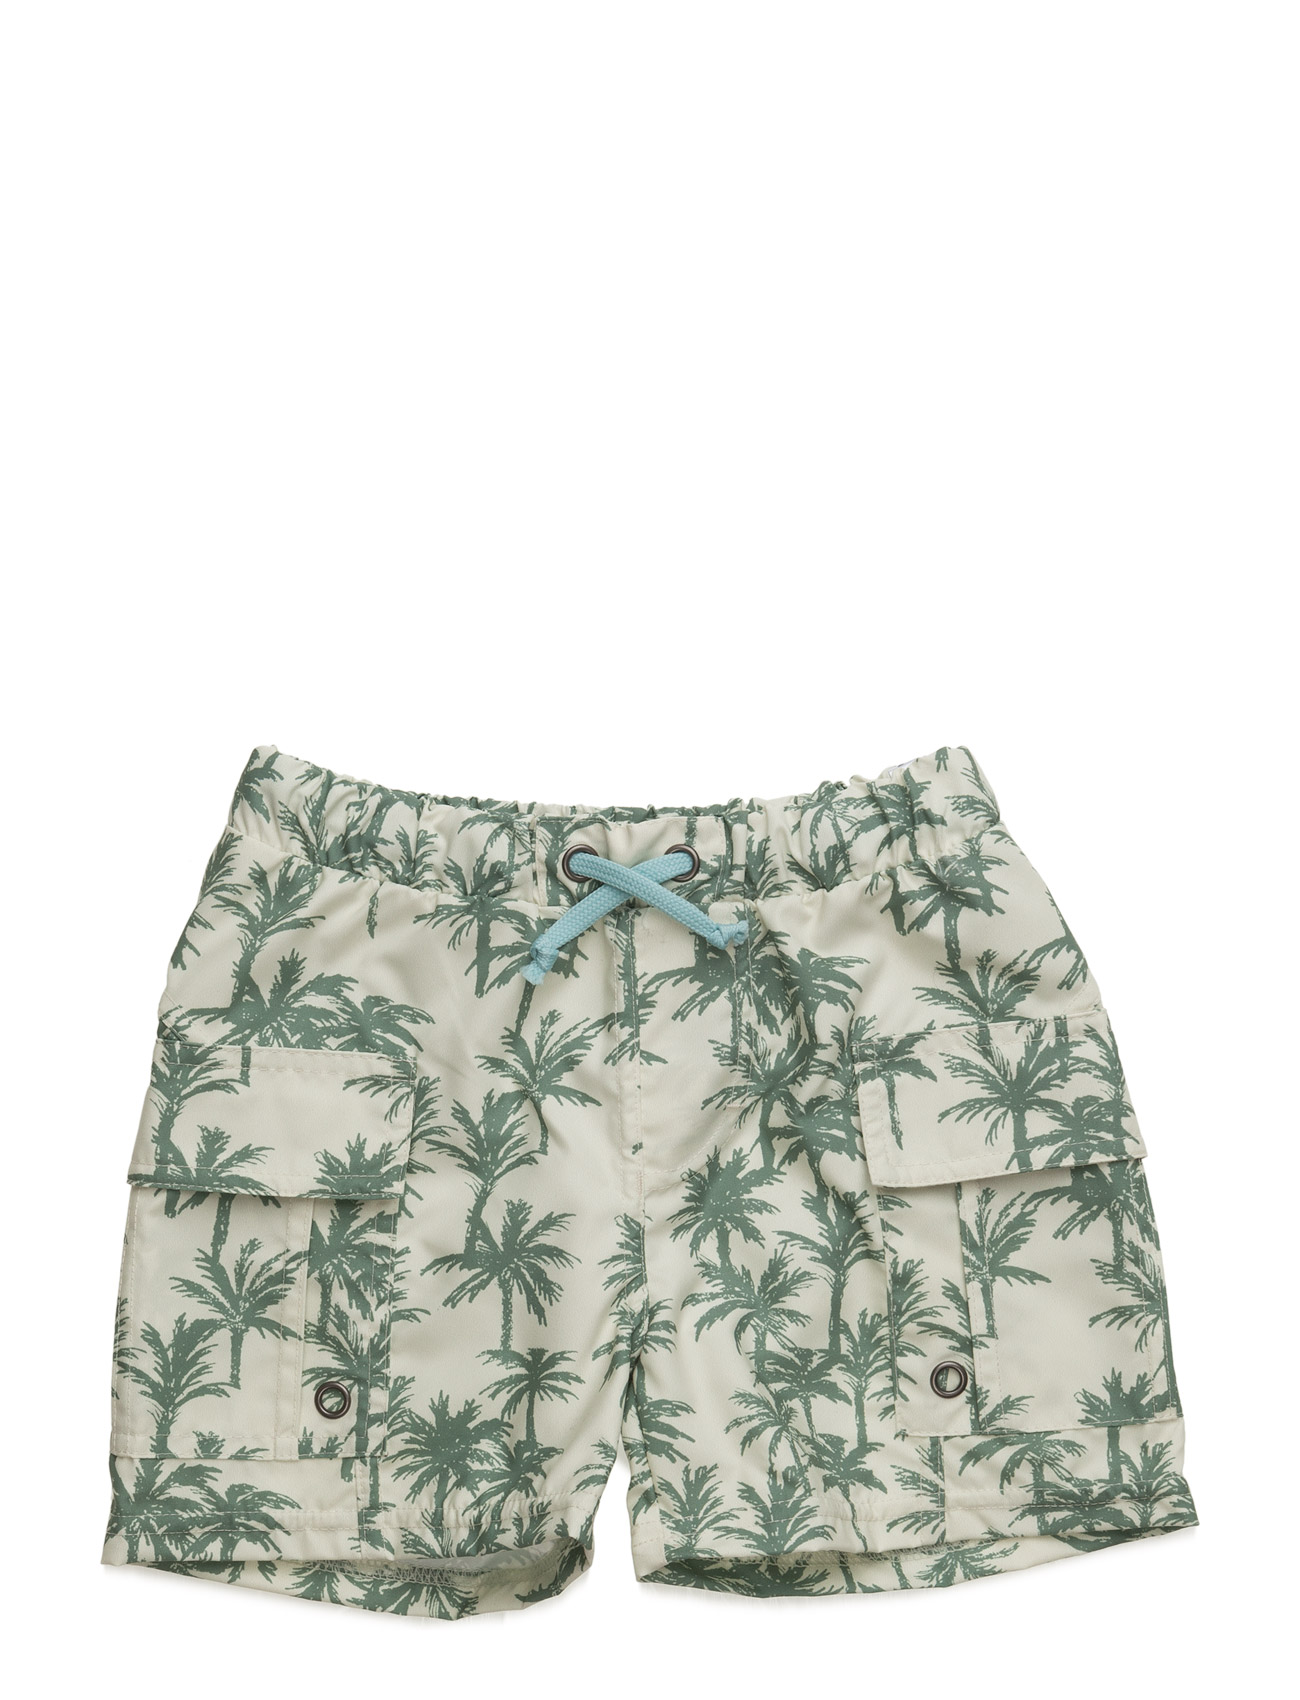 Mini A Ture Mateo Surfshort